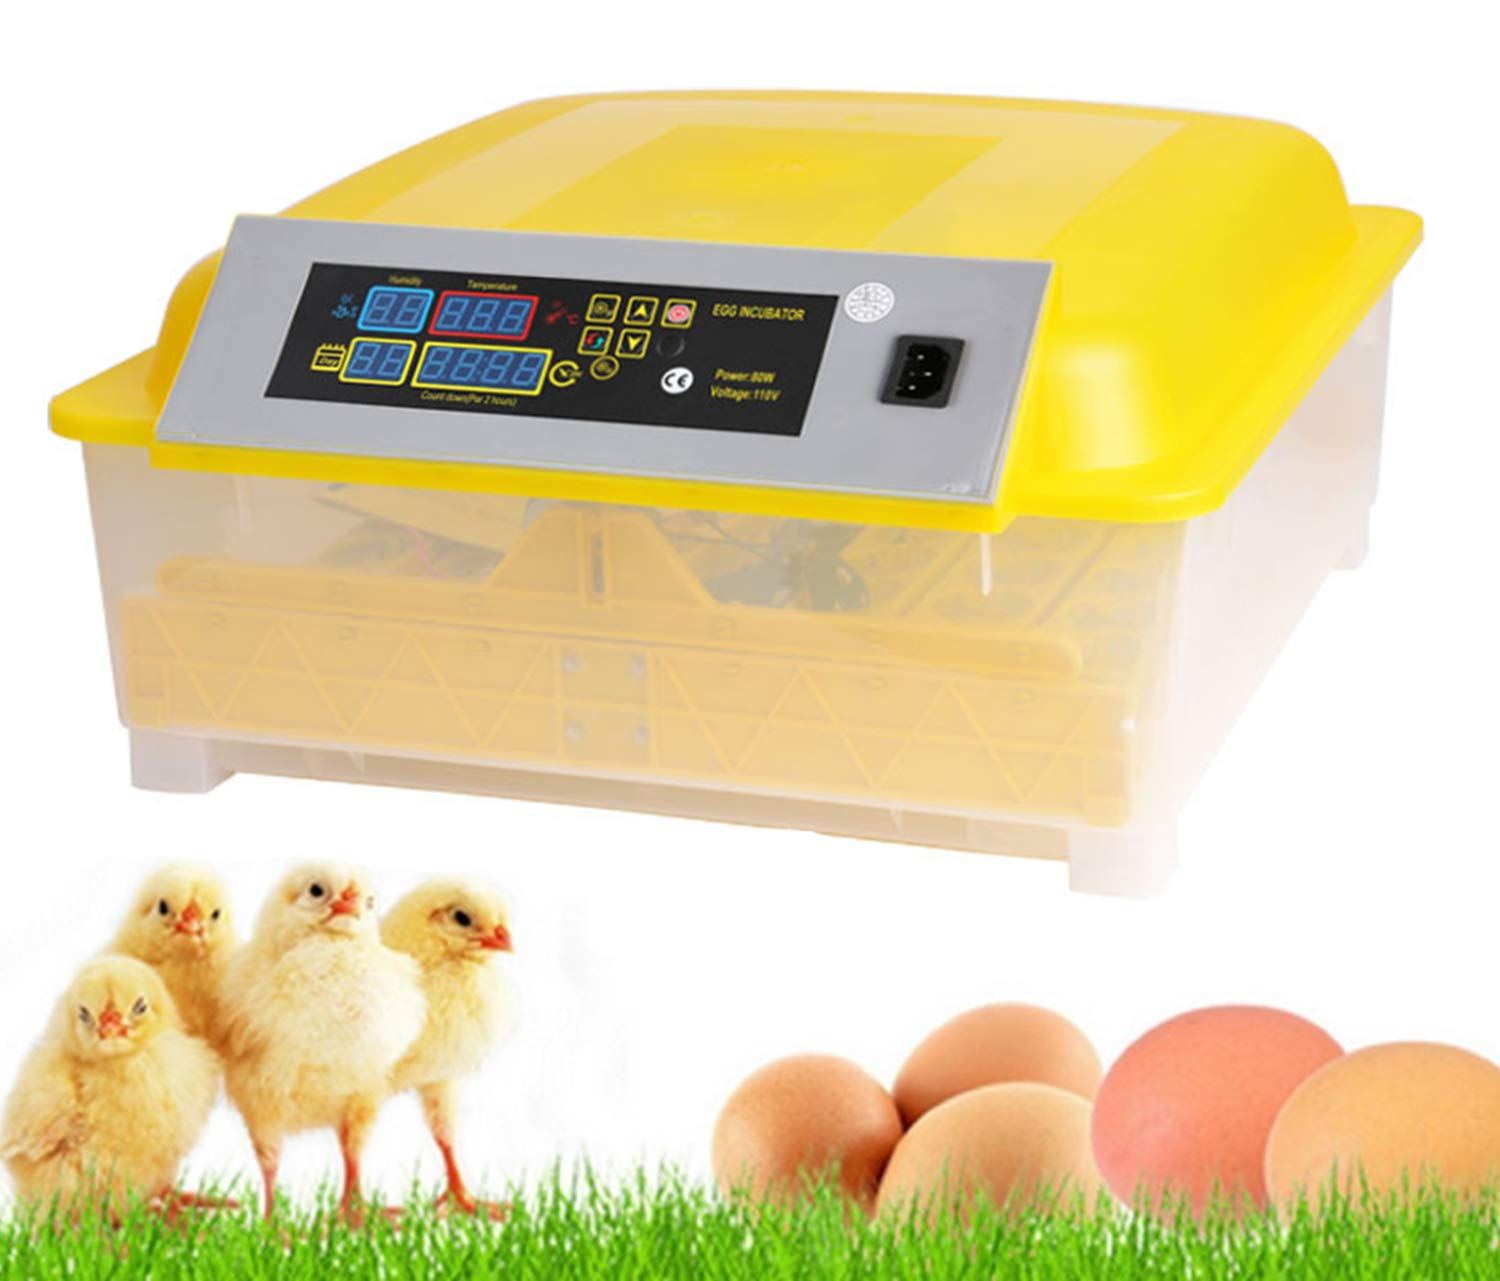 Automatic 48 Egg Hatcher Incubator with Temperature Control, Digital Poultry General Purpose Incubators for Chickens Ducks Birds